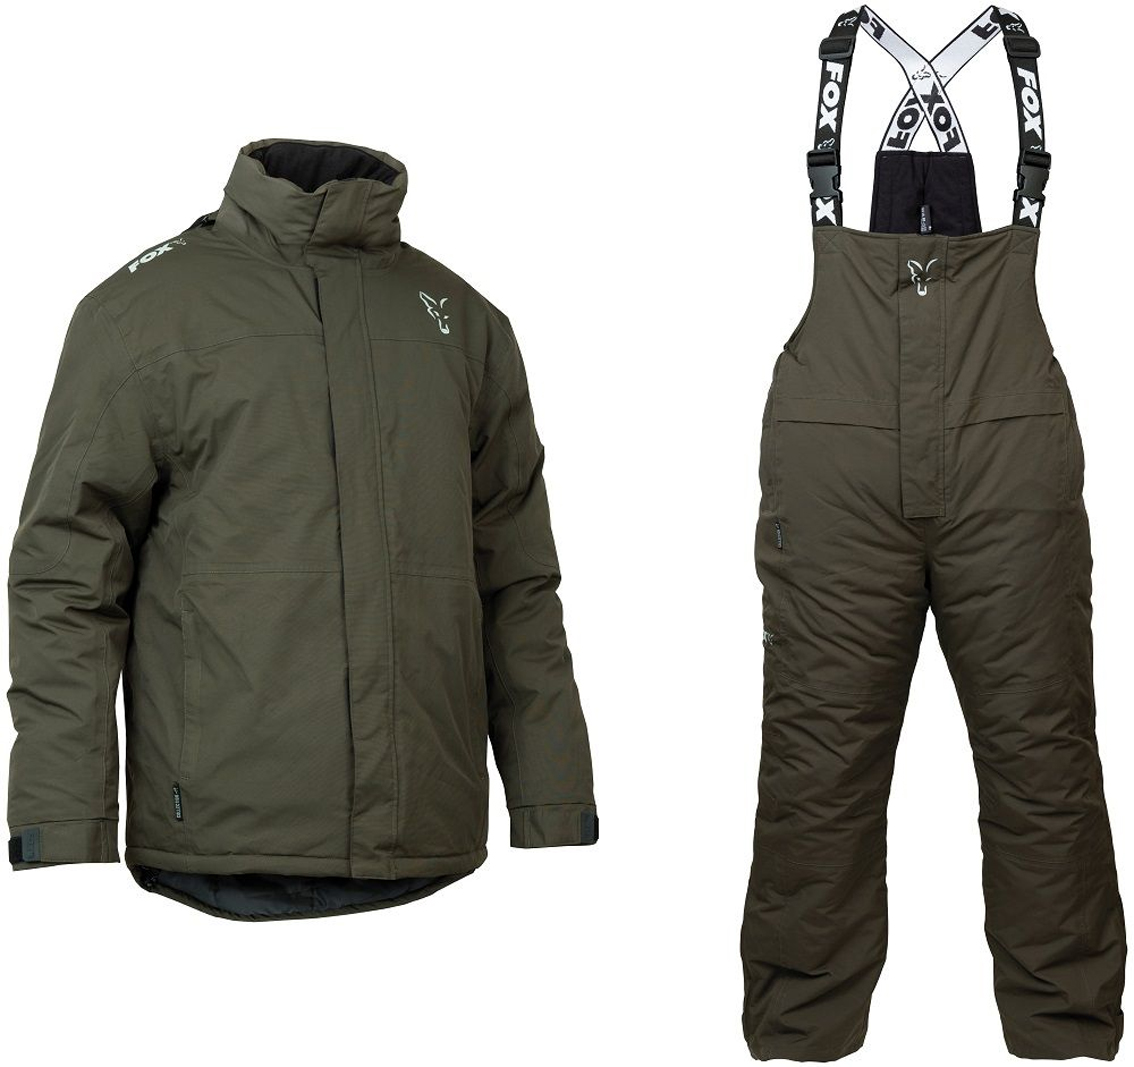 FOX Zimný Oblek Carp Winter Suit - M